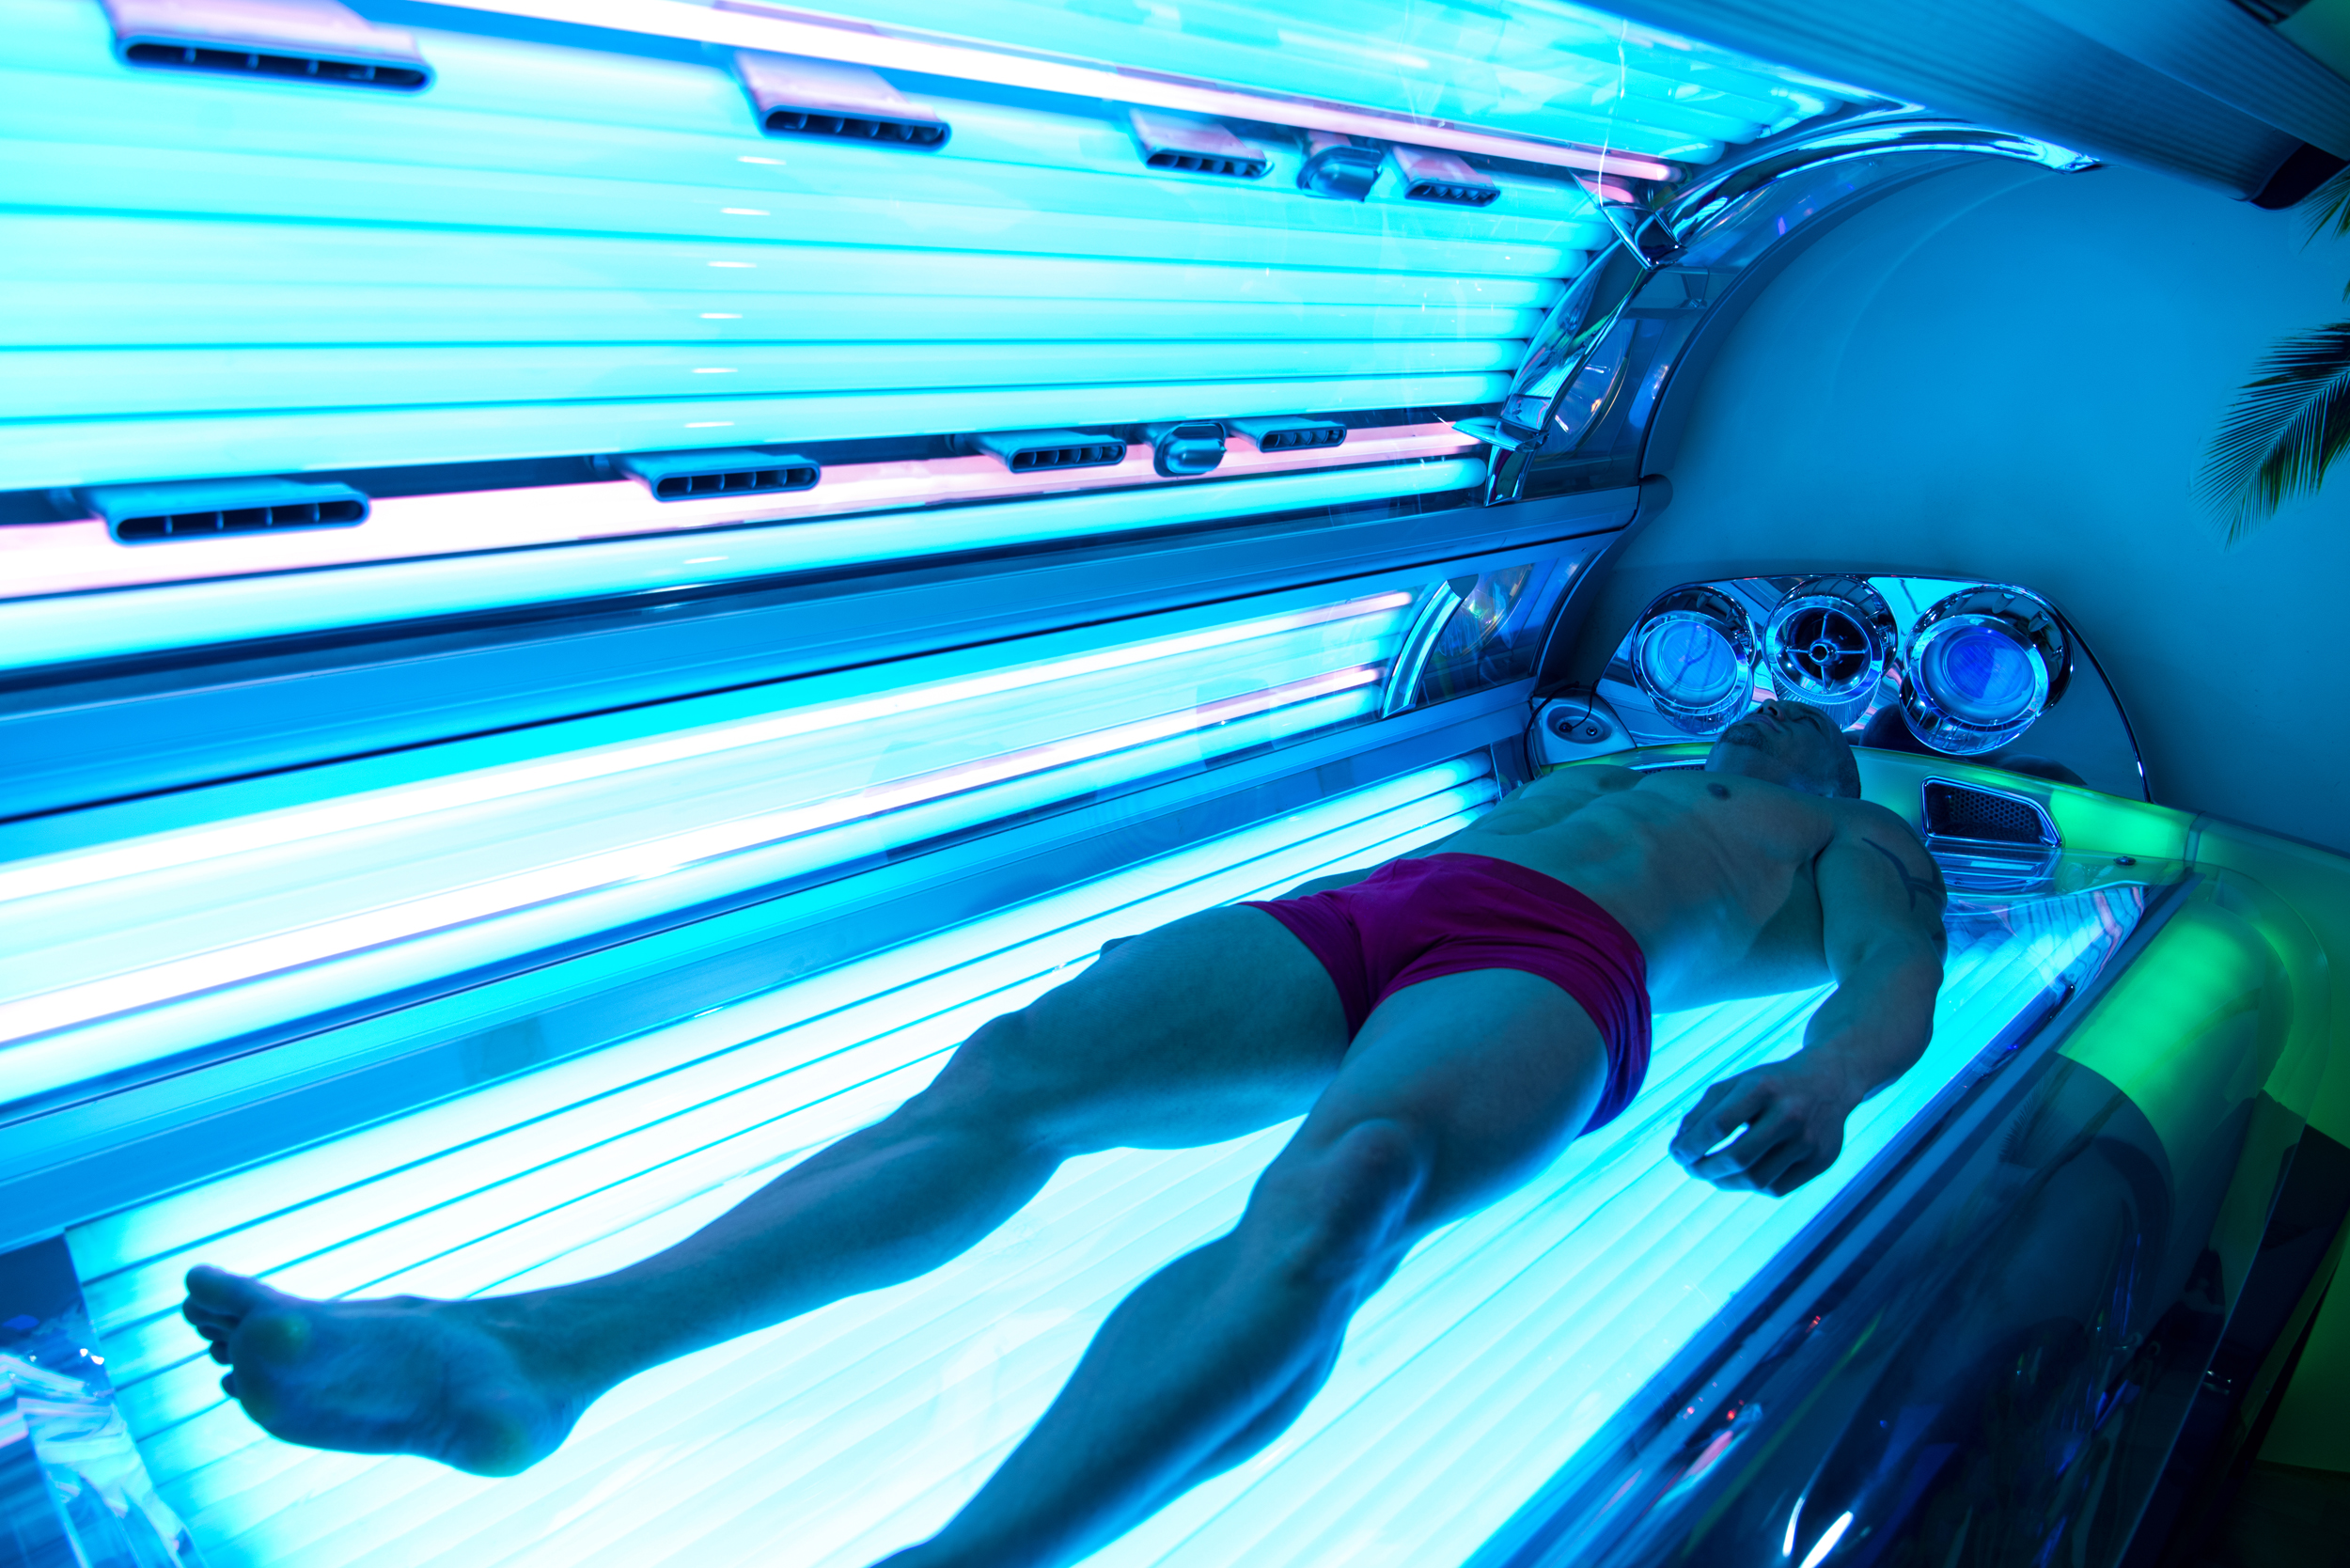 Tanning salons cluster in neighborhoods with more gay, bisexual men